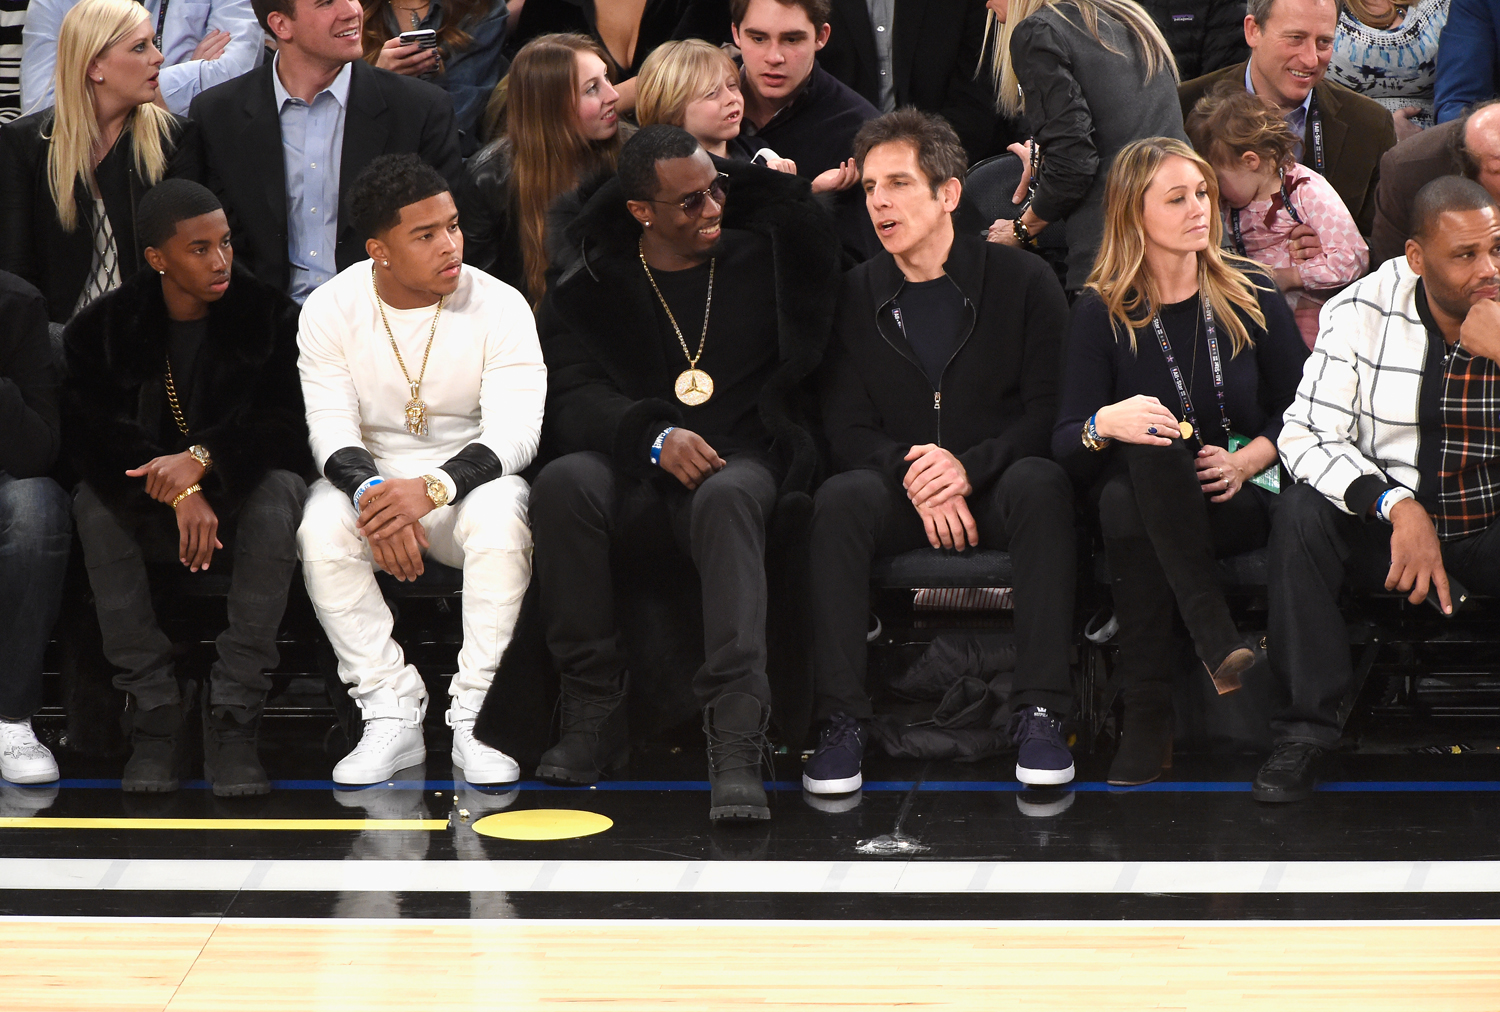 Sean Combs, Ben Stiller, and Christine Taylor attend The 64th NBA All-Star Game 2015